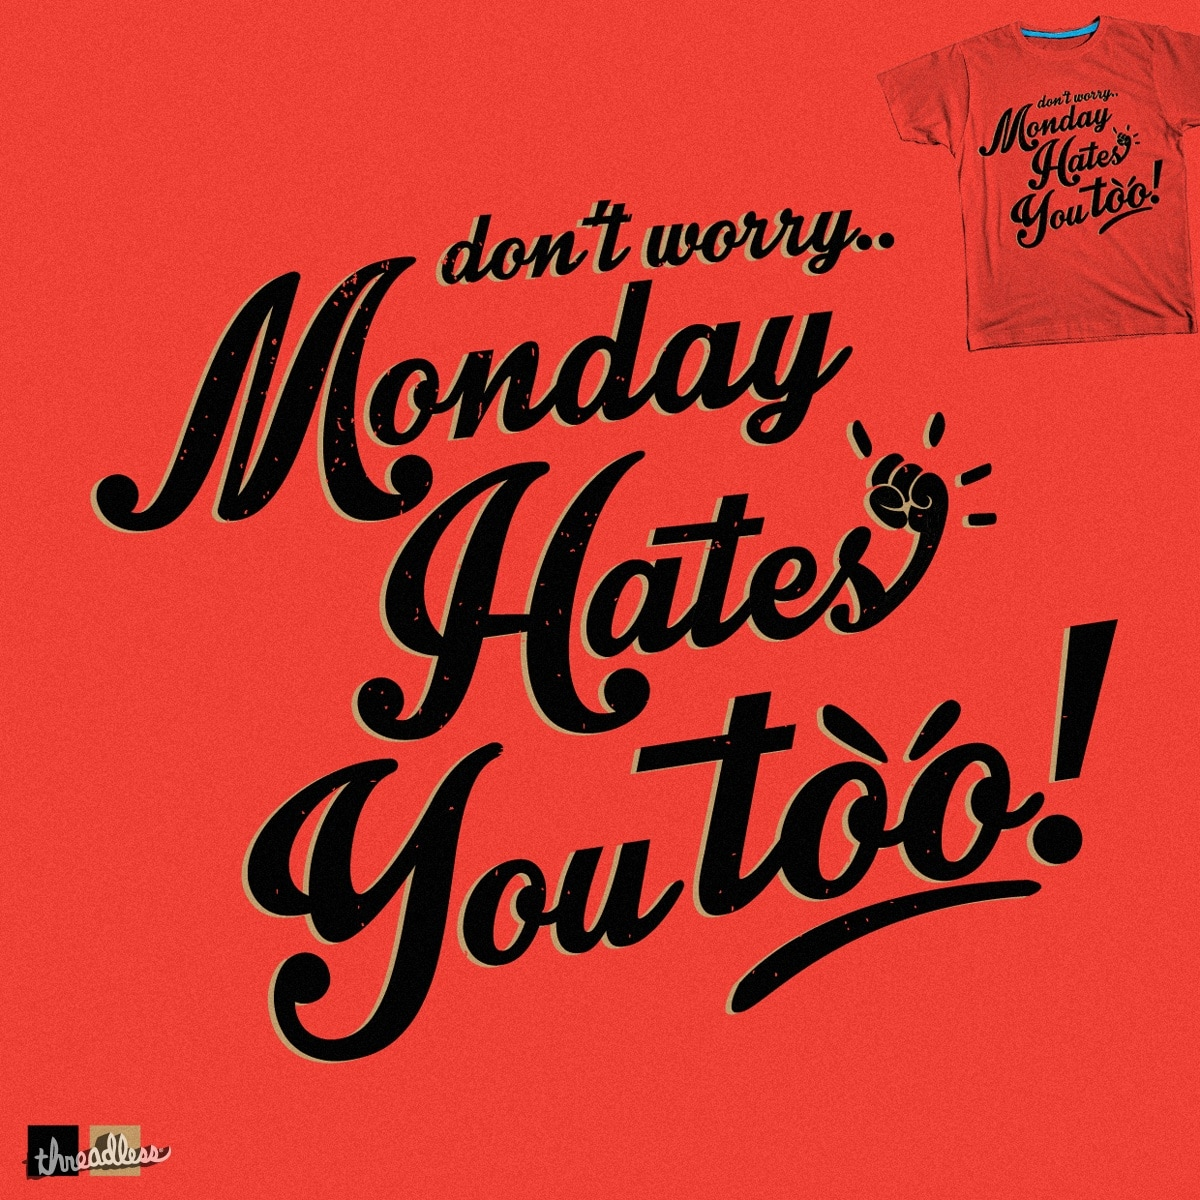 Monday Hates You Too! by rhobdesigns on Threadless